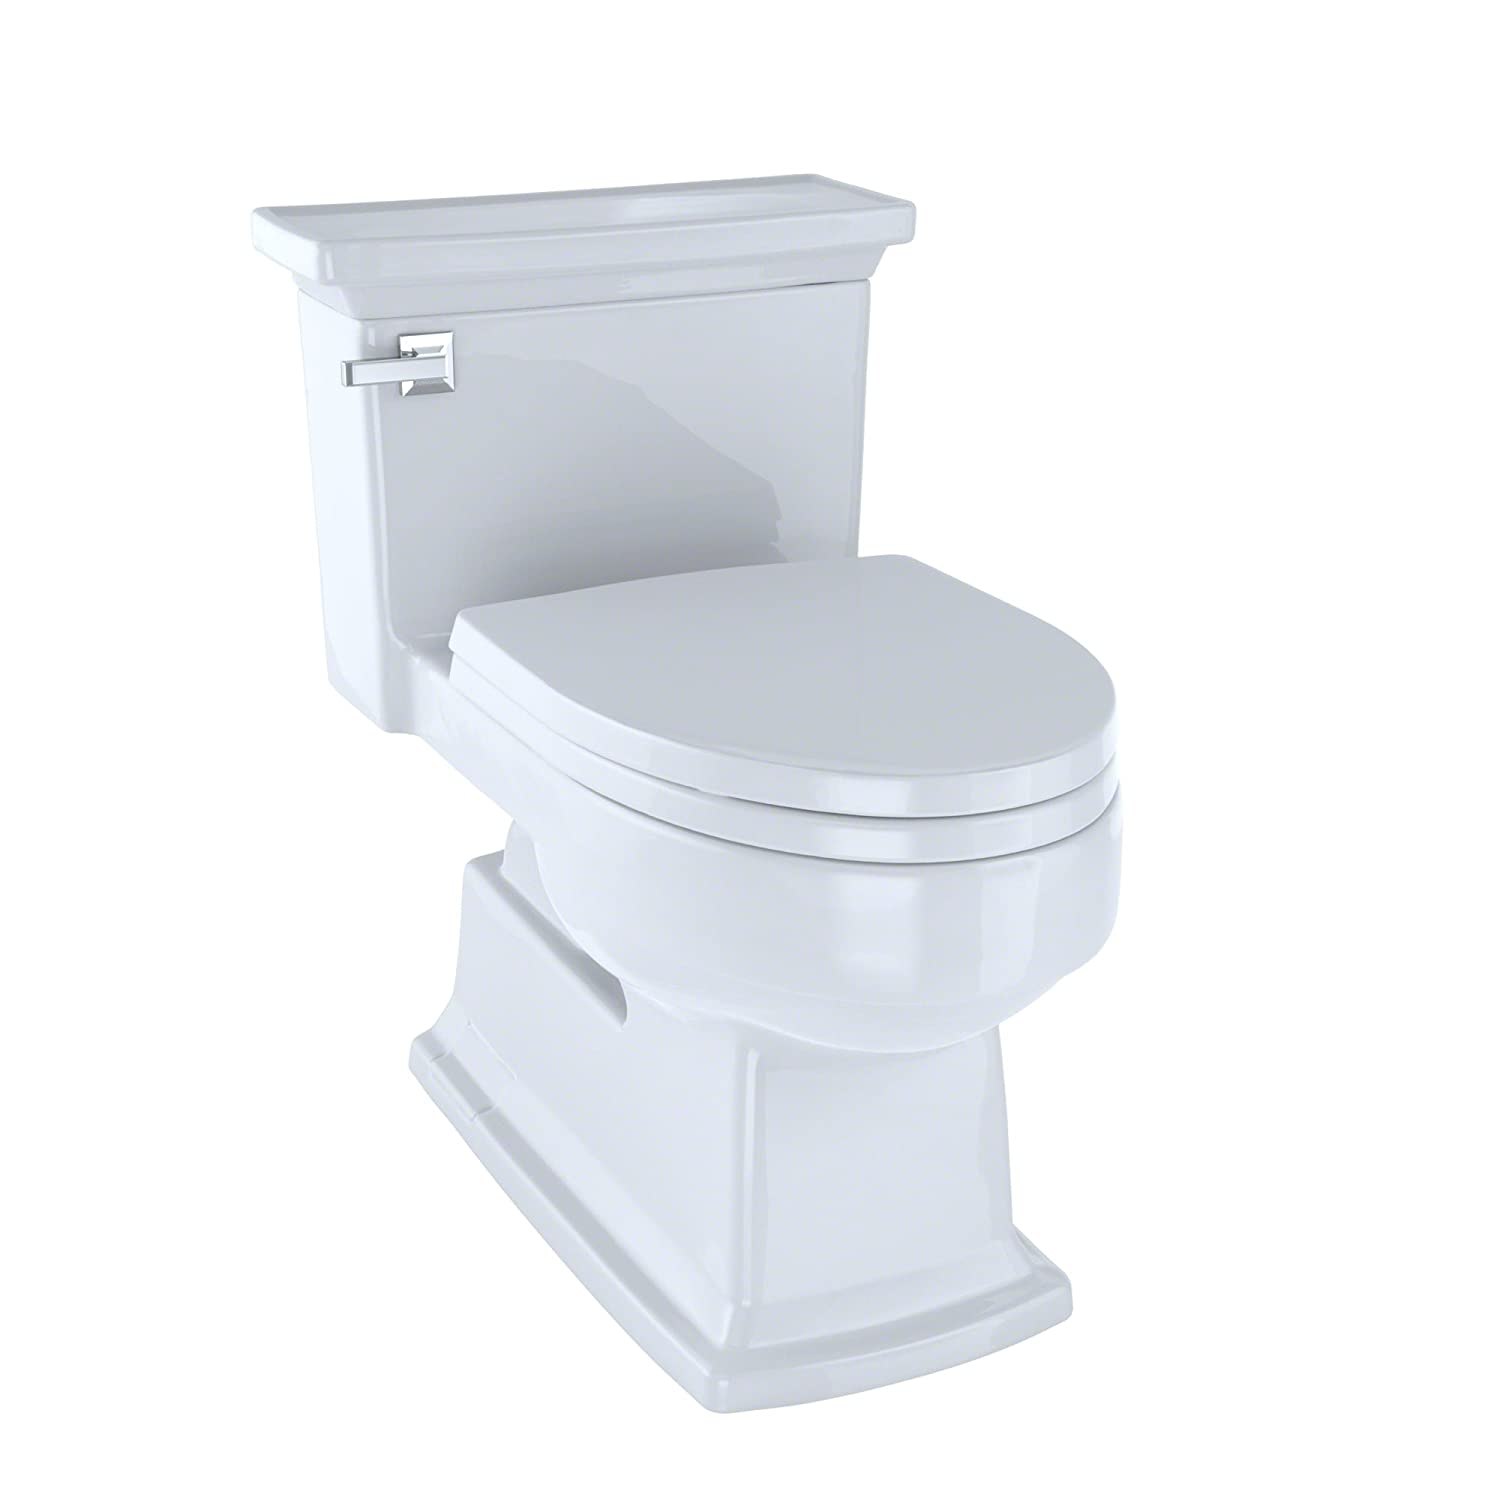 Lloyd One-Piece Toilet 1.28 GPF Cotton with SoftClose seat ...